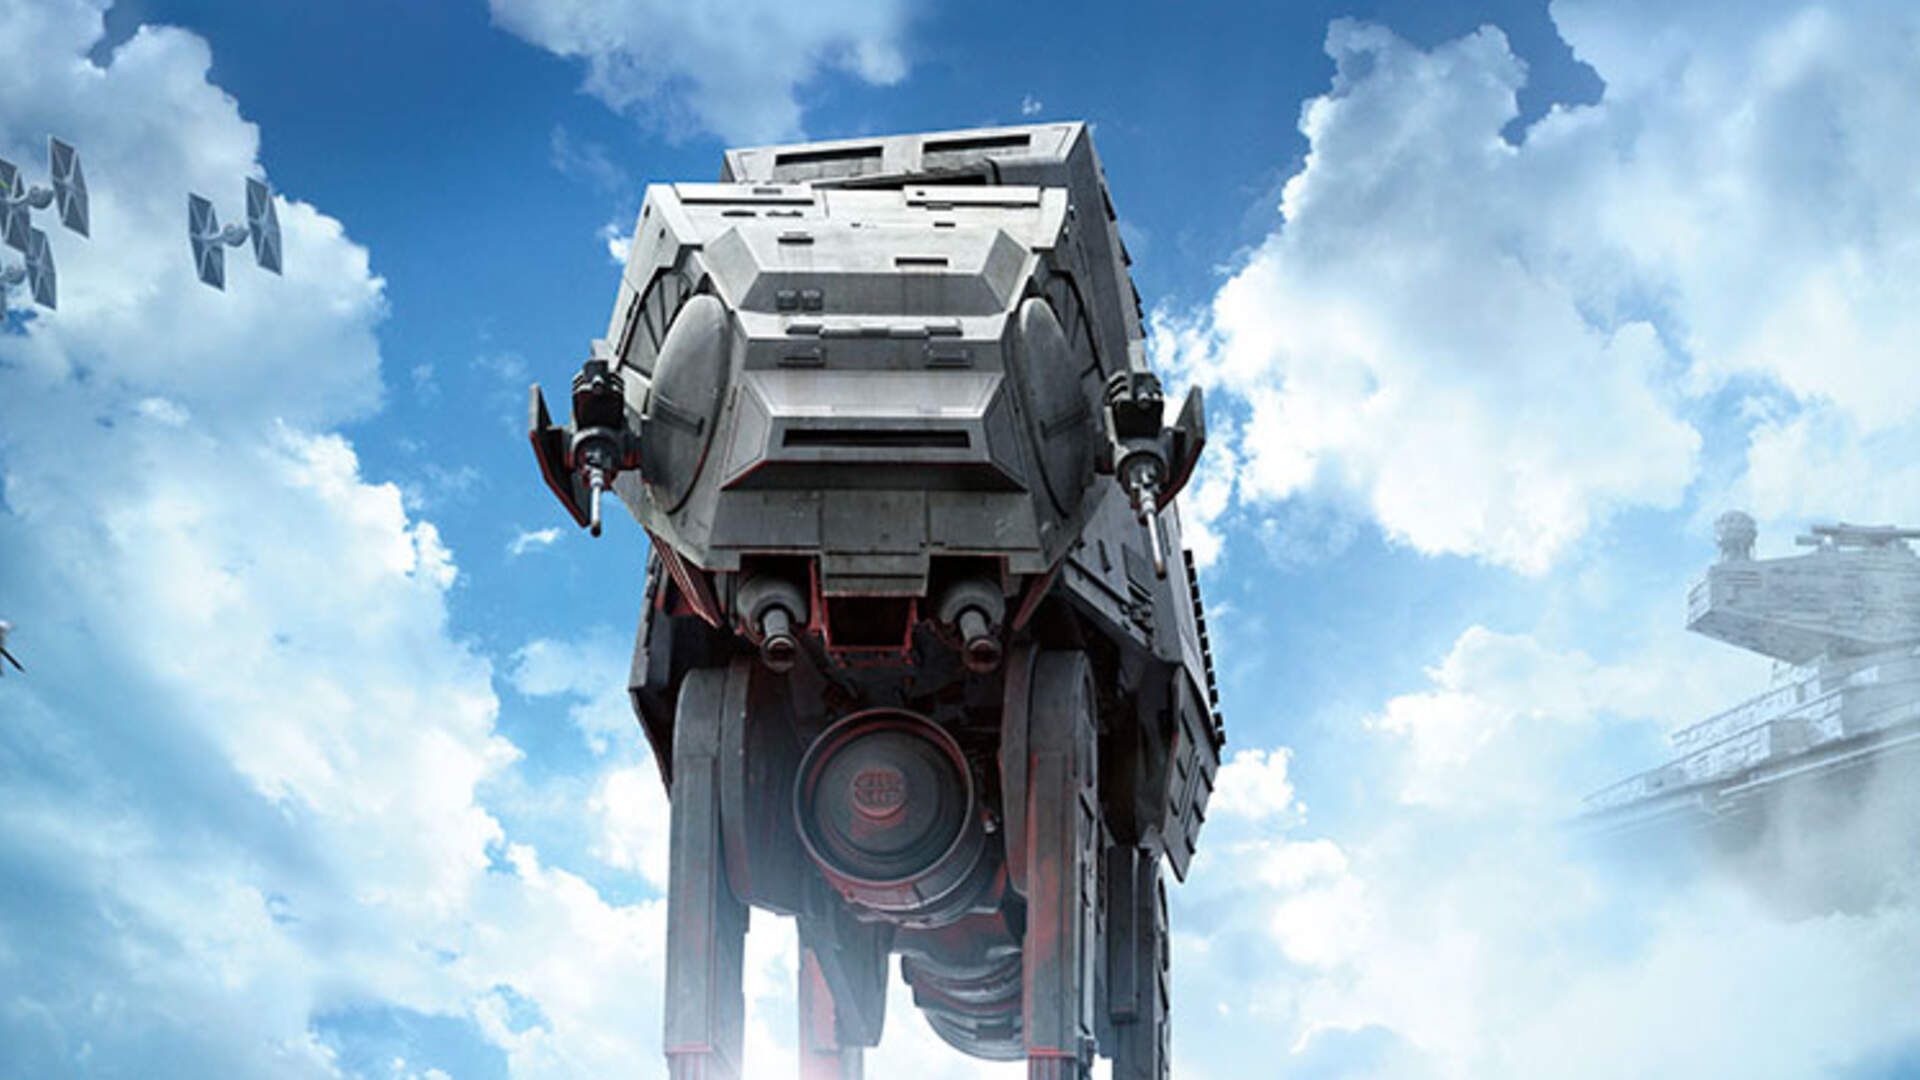 Star Wars Battlefront Vehicle Guide - AT-AT, X-Wing, TIE Fighter